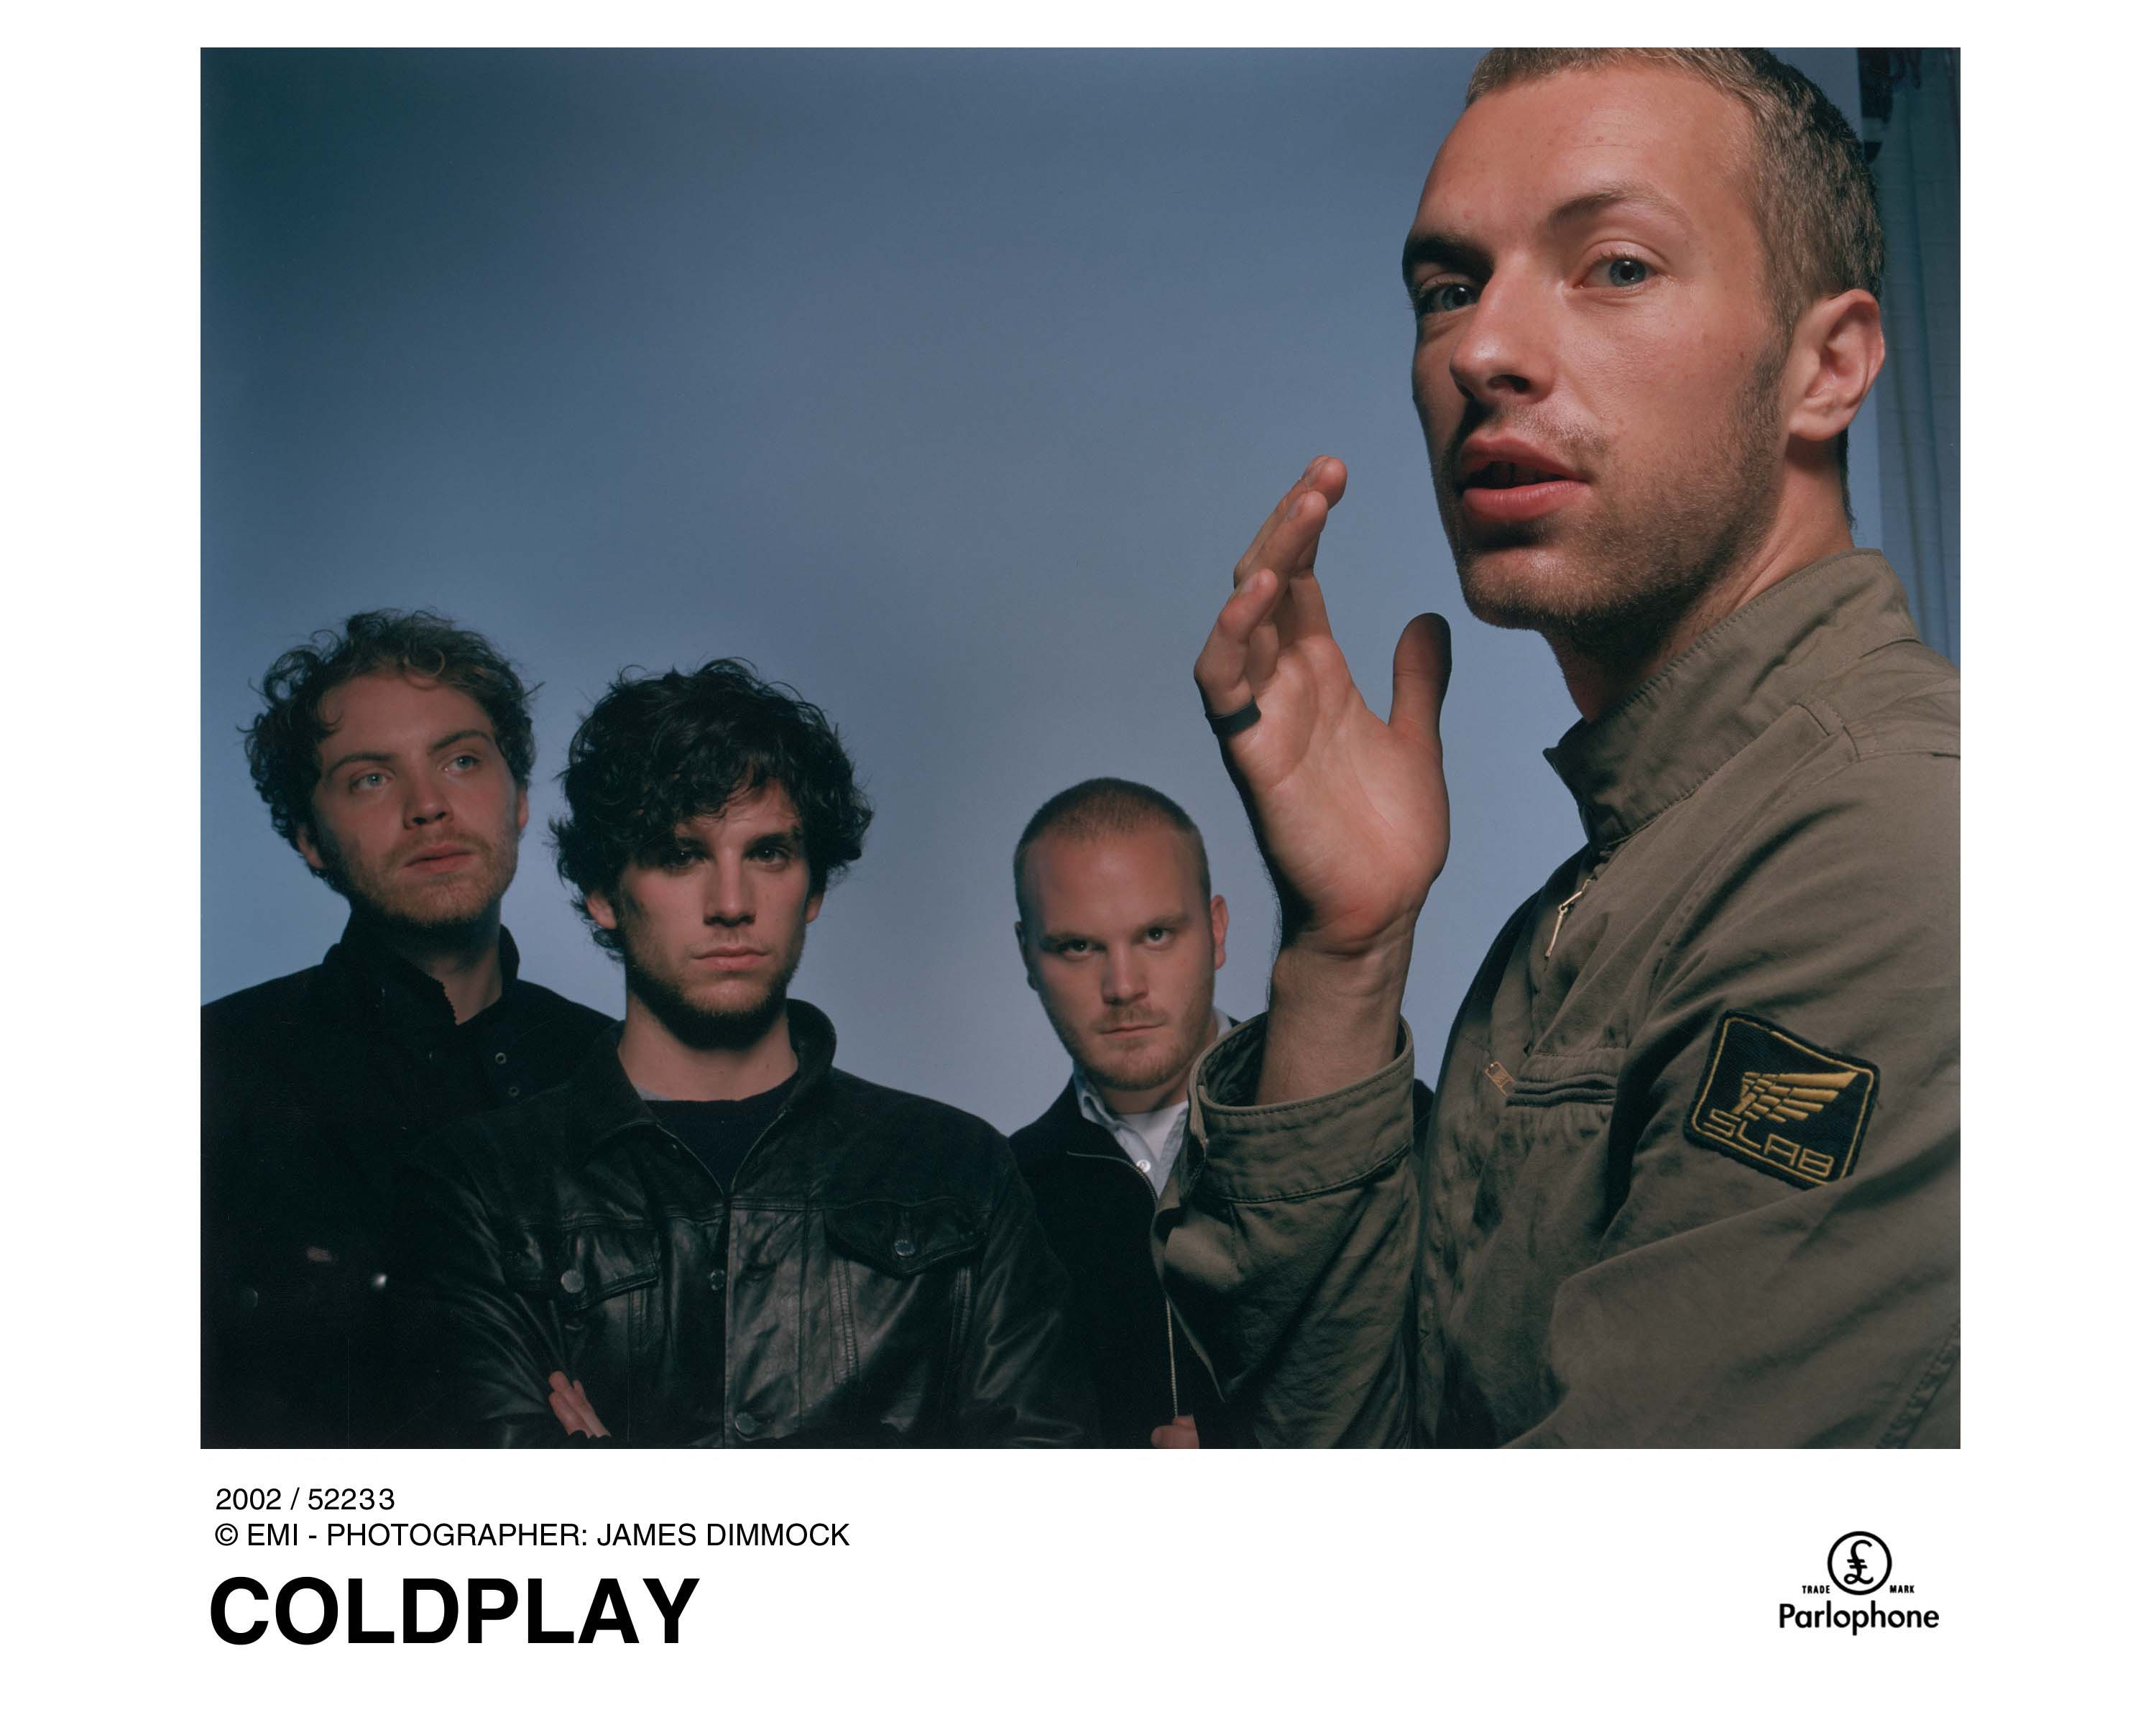 MUSIC IS EVERYTHING. - Chris Martin (Coldplay singer/keyboardist/guitarist). COLDPLAY: The Light of Music, Passion, and Development! (Photo courtesy of Capitol Records & Coldplay's Mgmt) Coldplay supports MakeTradeFair.org  [MORE]